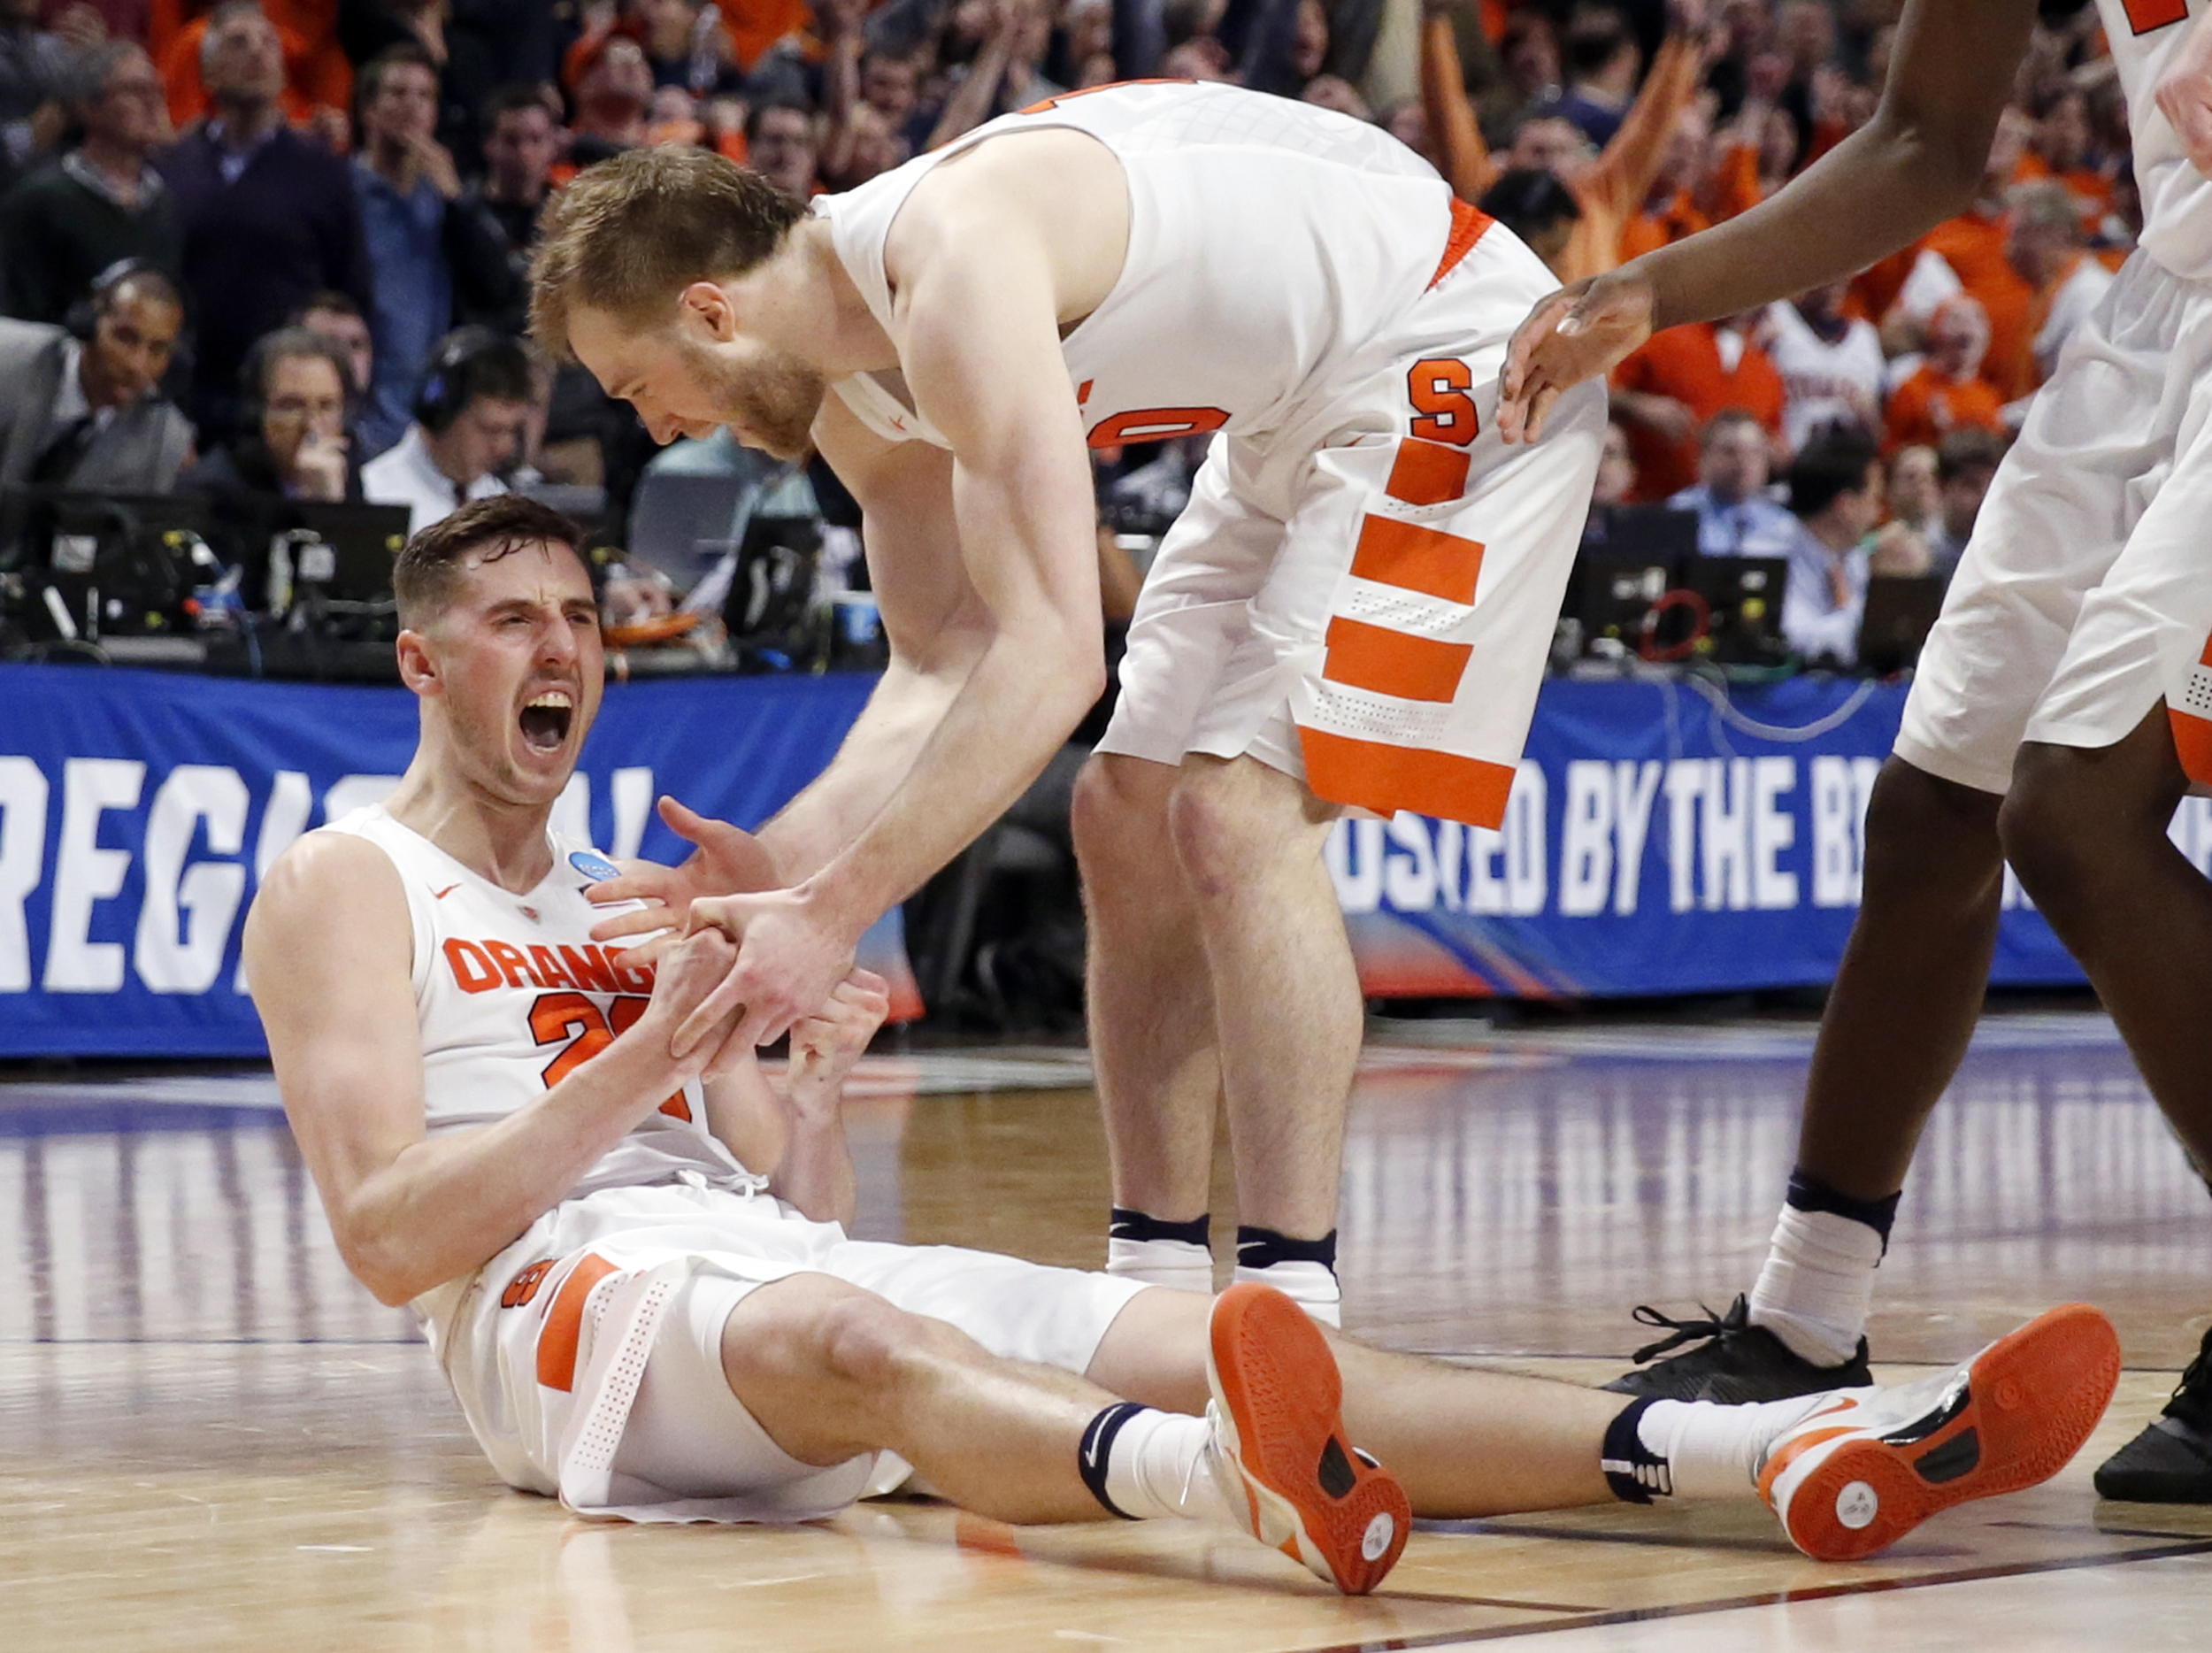 Syracuse's Tyler Lydon (20) celebrates with Trevor Cooney (10) after getting fouled in the final seconds of a college basketball game in the regional semifinals of the NCAA Tournament, Friday, March 25, 2016, in Chicago. Syracuse won 63-60. (AP Photo/Char